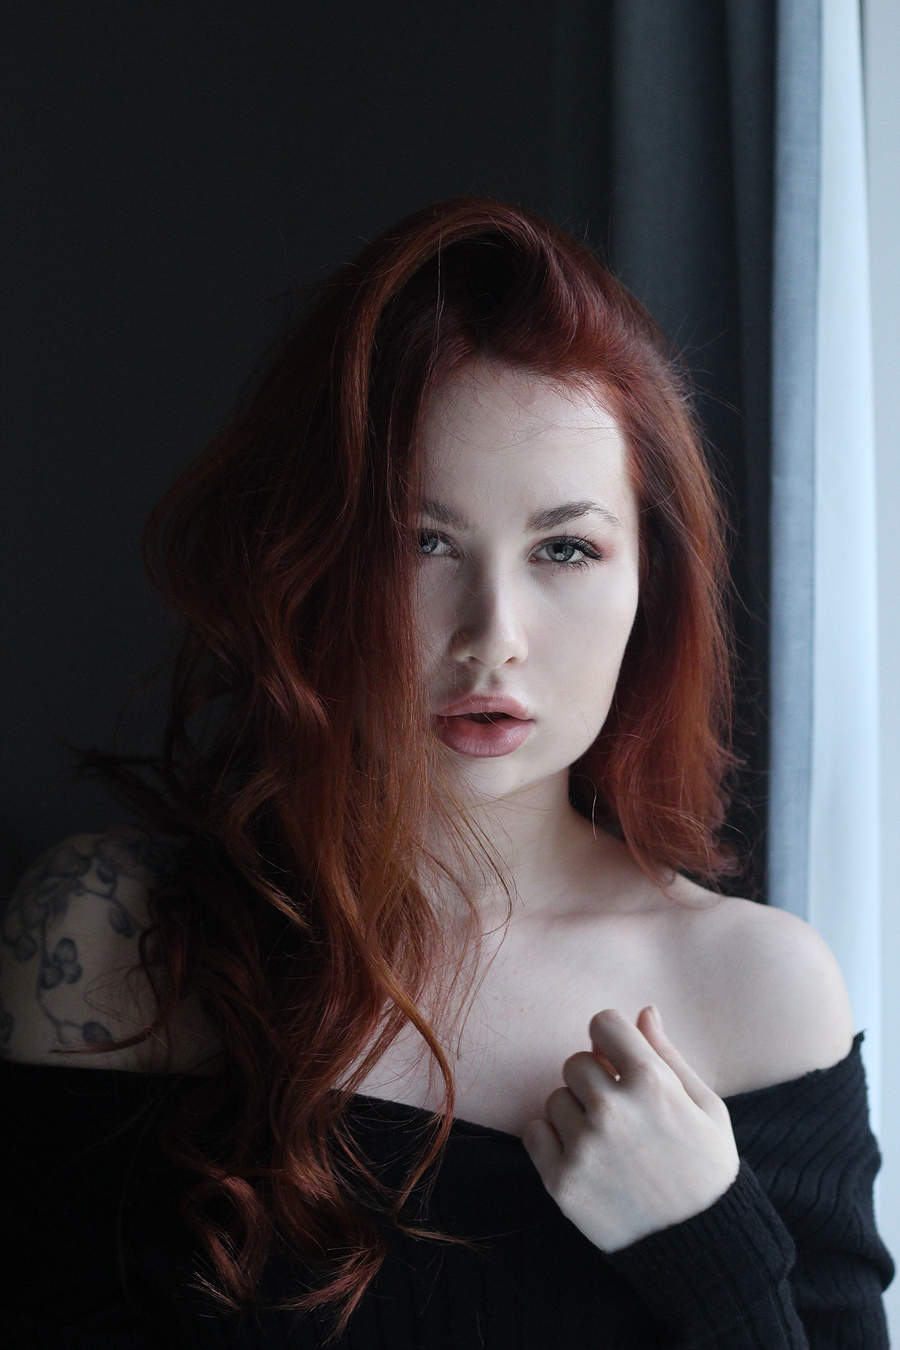 She has skin as white as snow / Photography by DeePhotographic, Model Nico Dee / Uploaded 7th December 2019 @ 06:40 PM